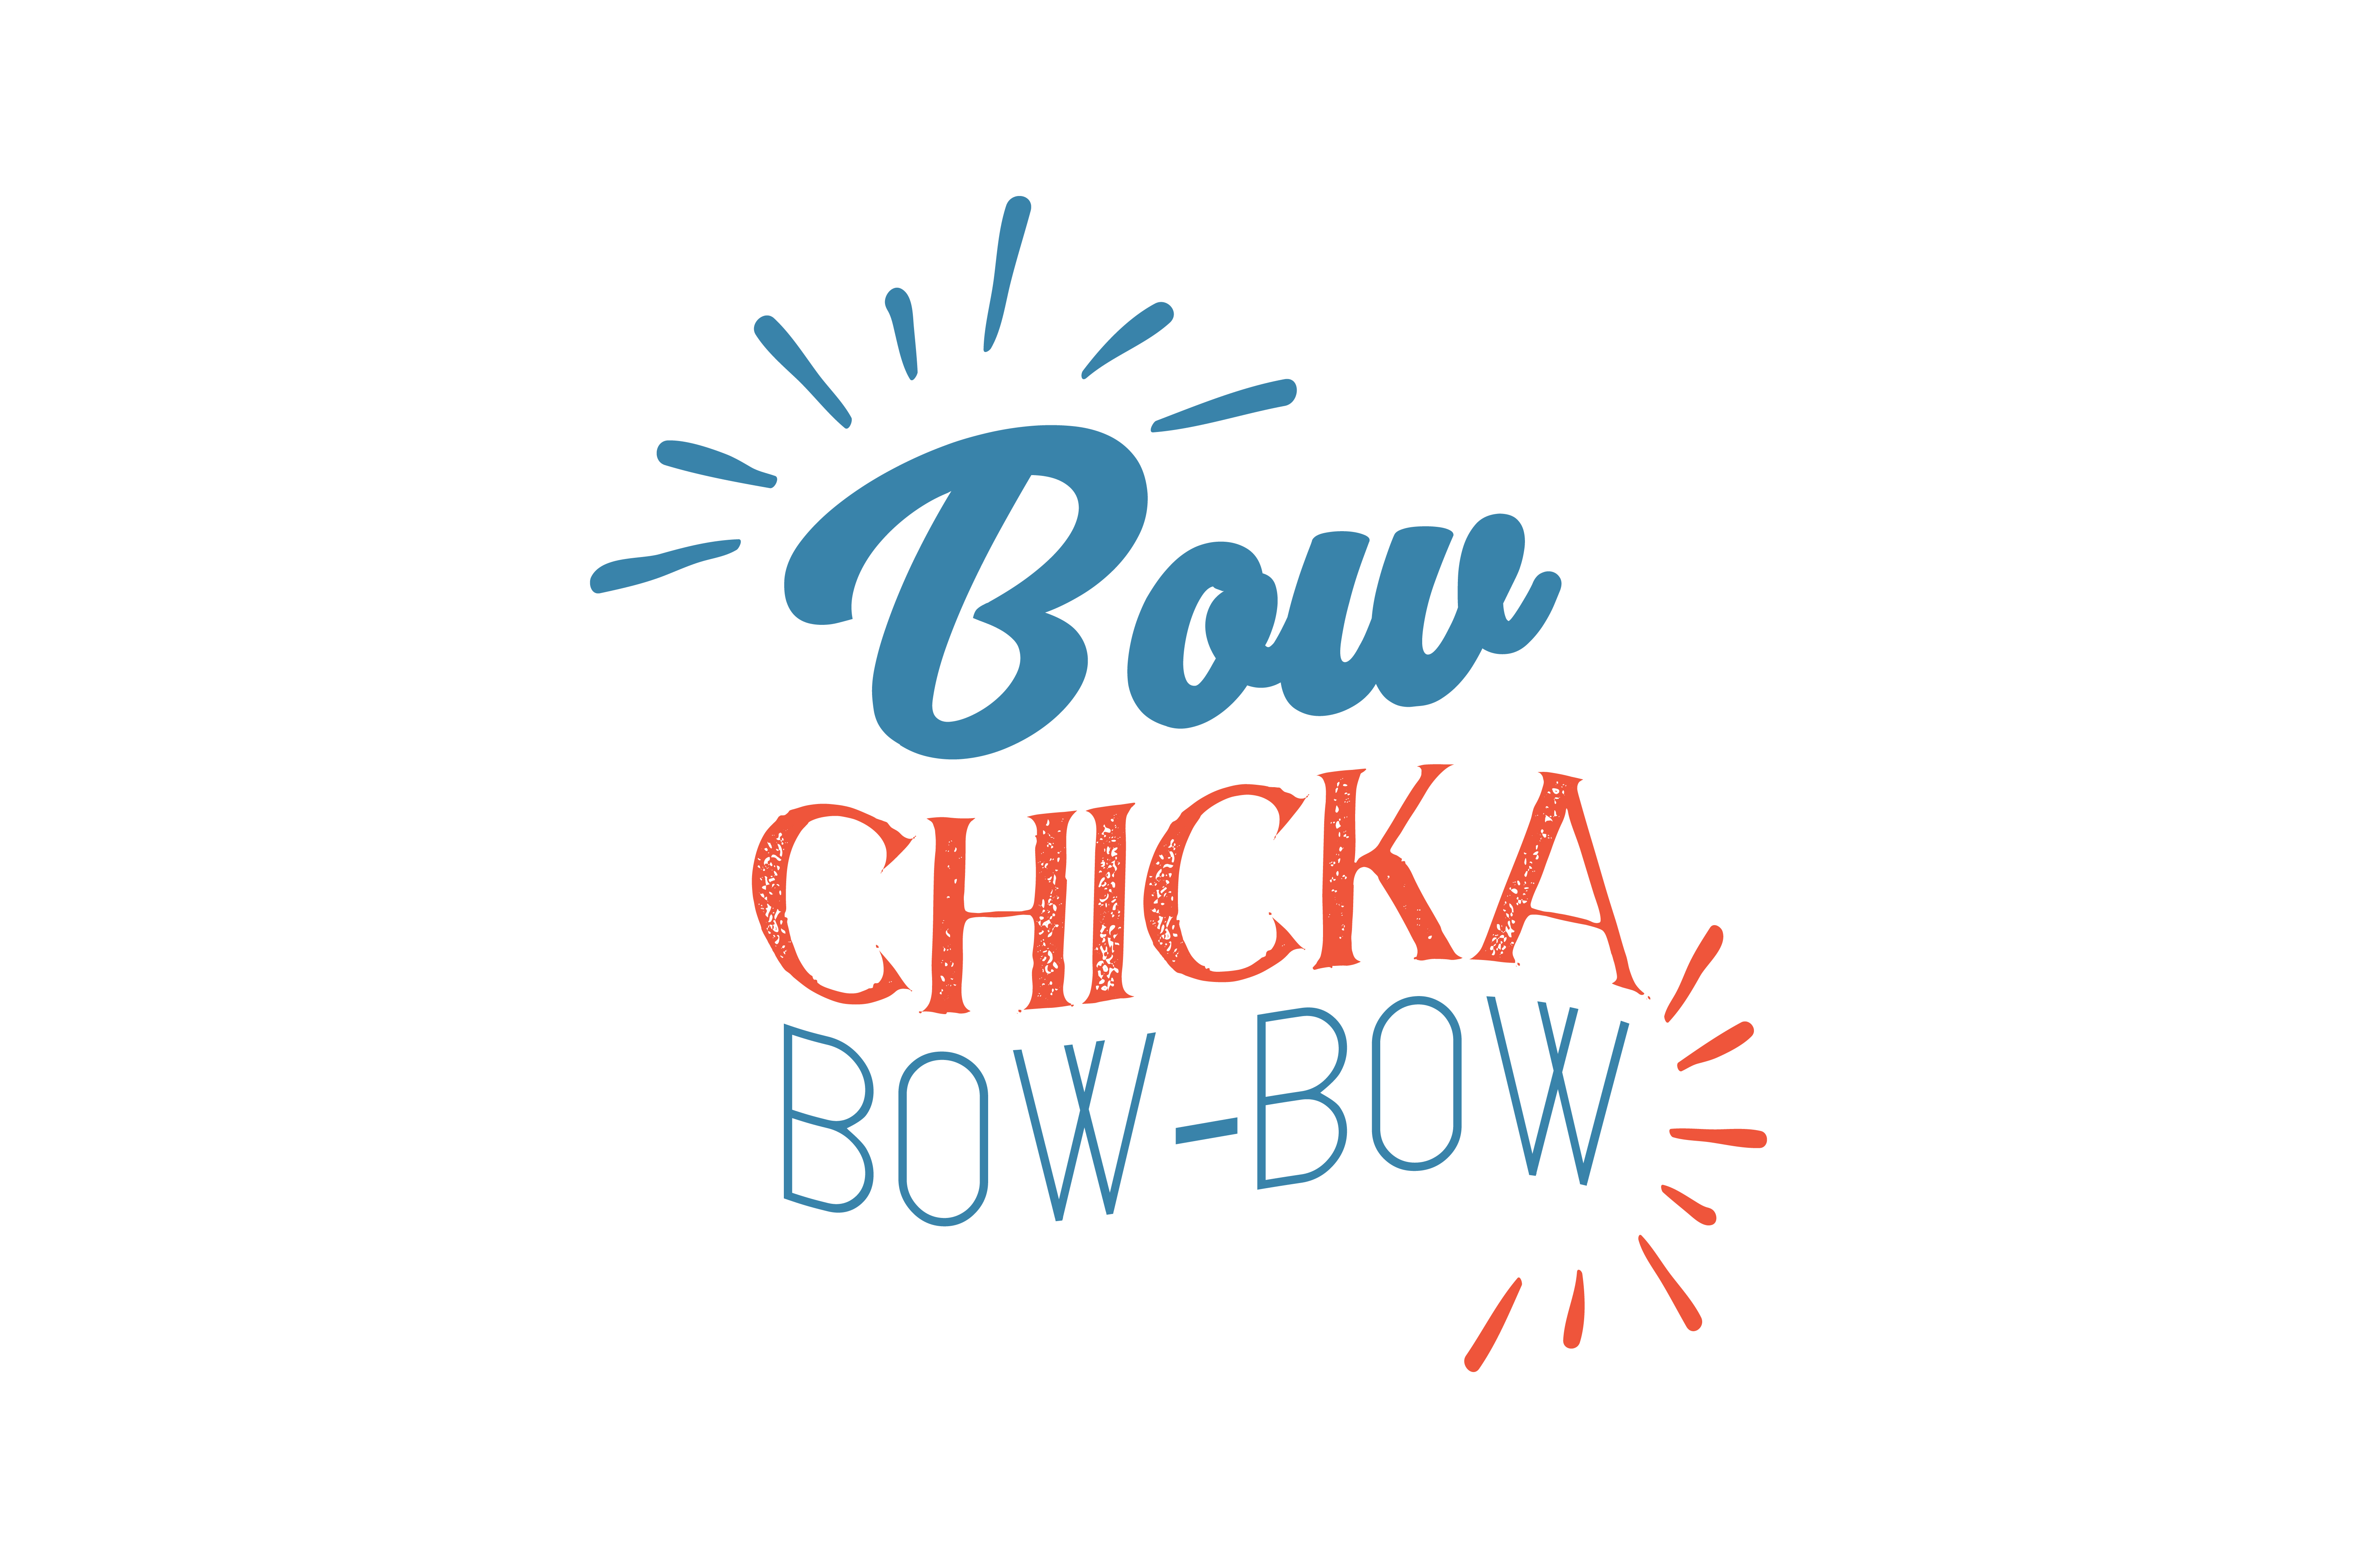 Download Free Bow Chicka Bow Bow Quote Svg Cut Graphic By Thelucky Creative for Cricut Explore, Silhouette and other cutting machines.